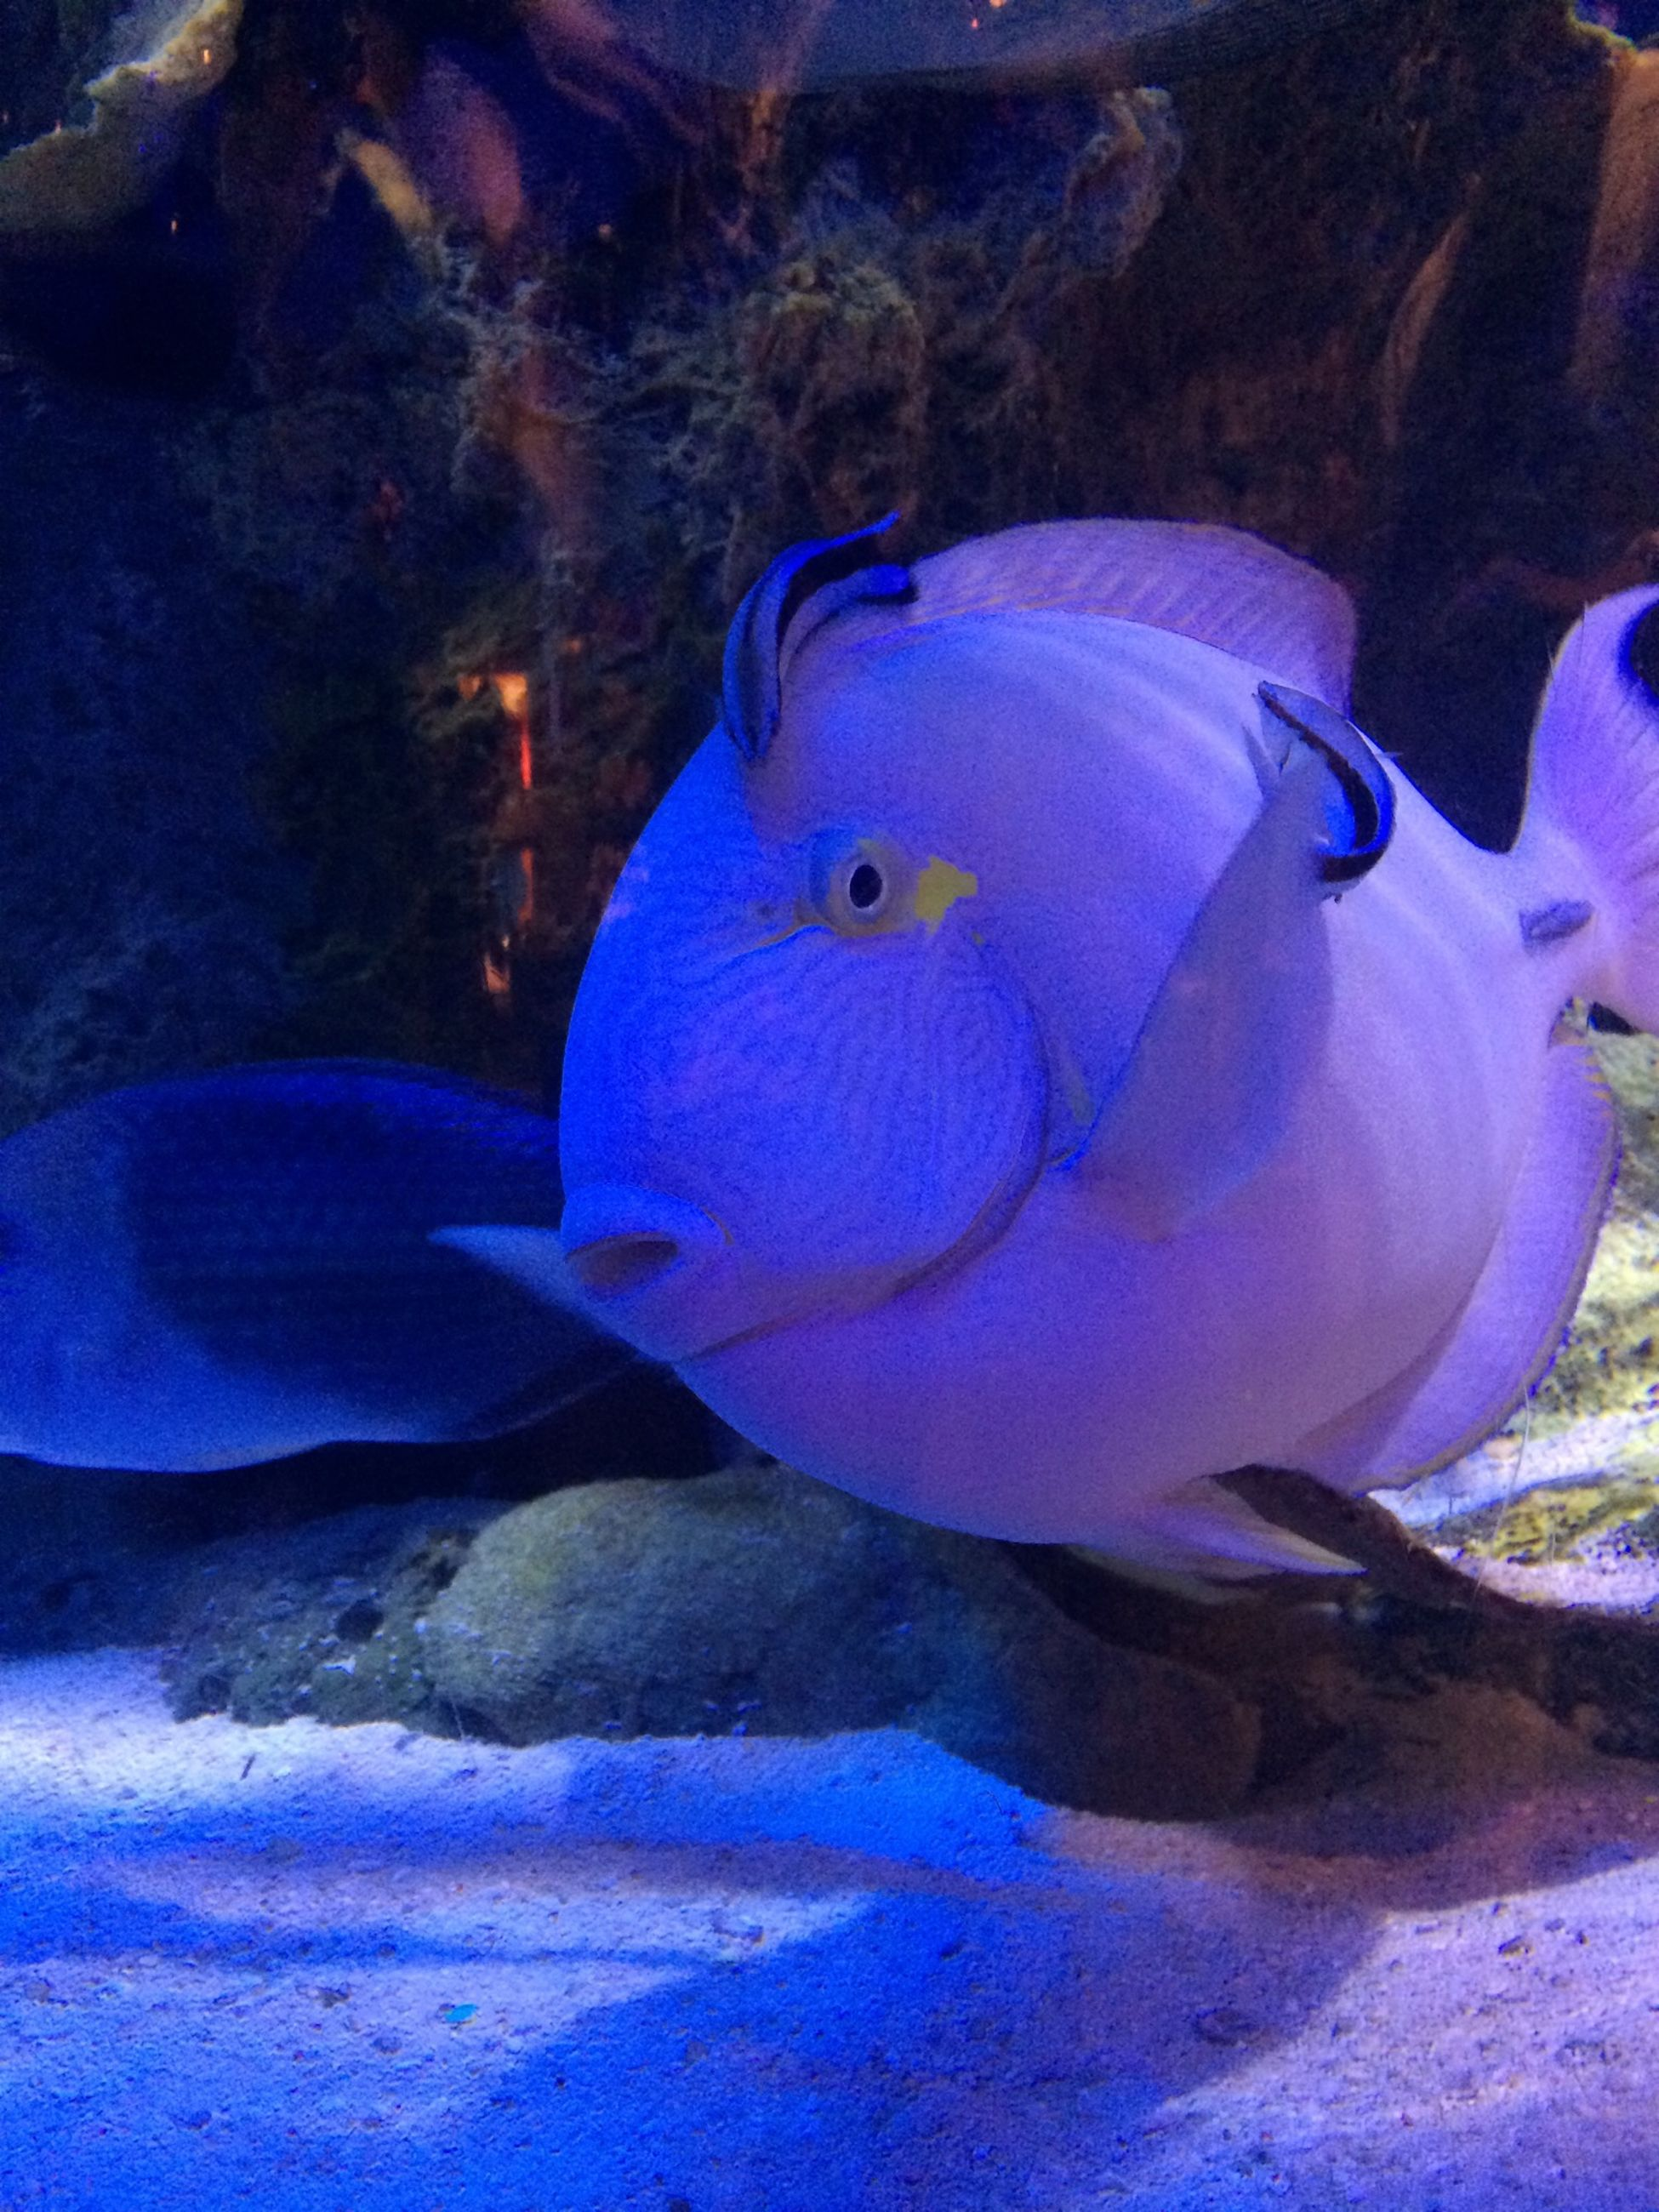 animal themes, underwater, swimming, animals in the wild, water, sea life, wildlife, fish, undersea, sea, one animal, blue, aquarium, nature, beauty in nature, aquatic, close-up, coral, animals in captivity, zoology